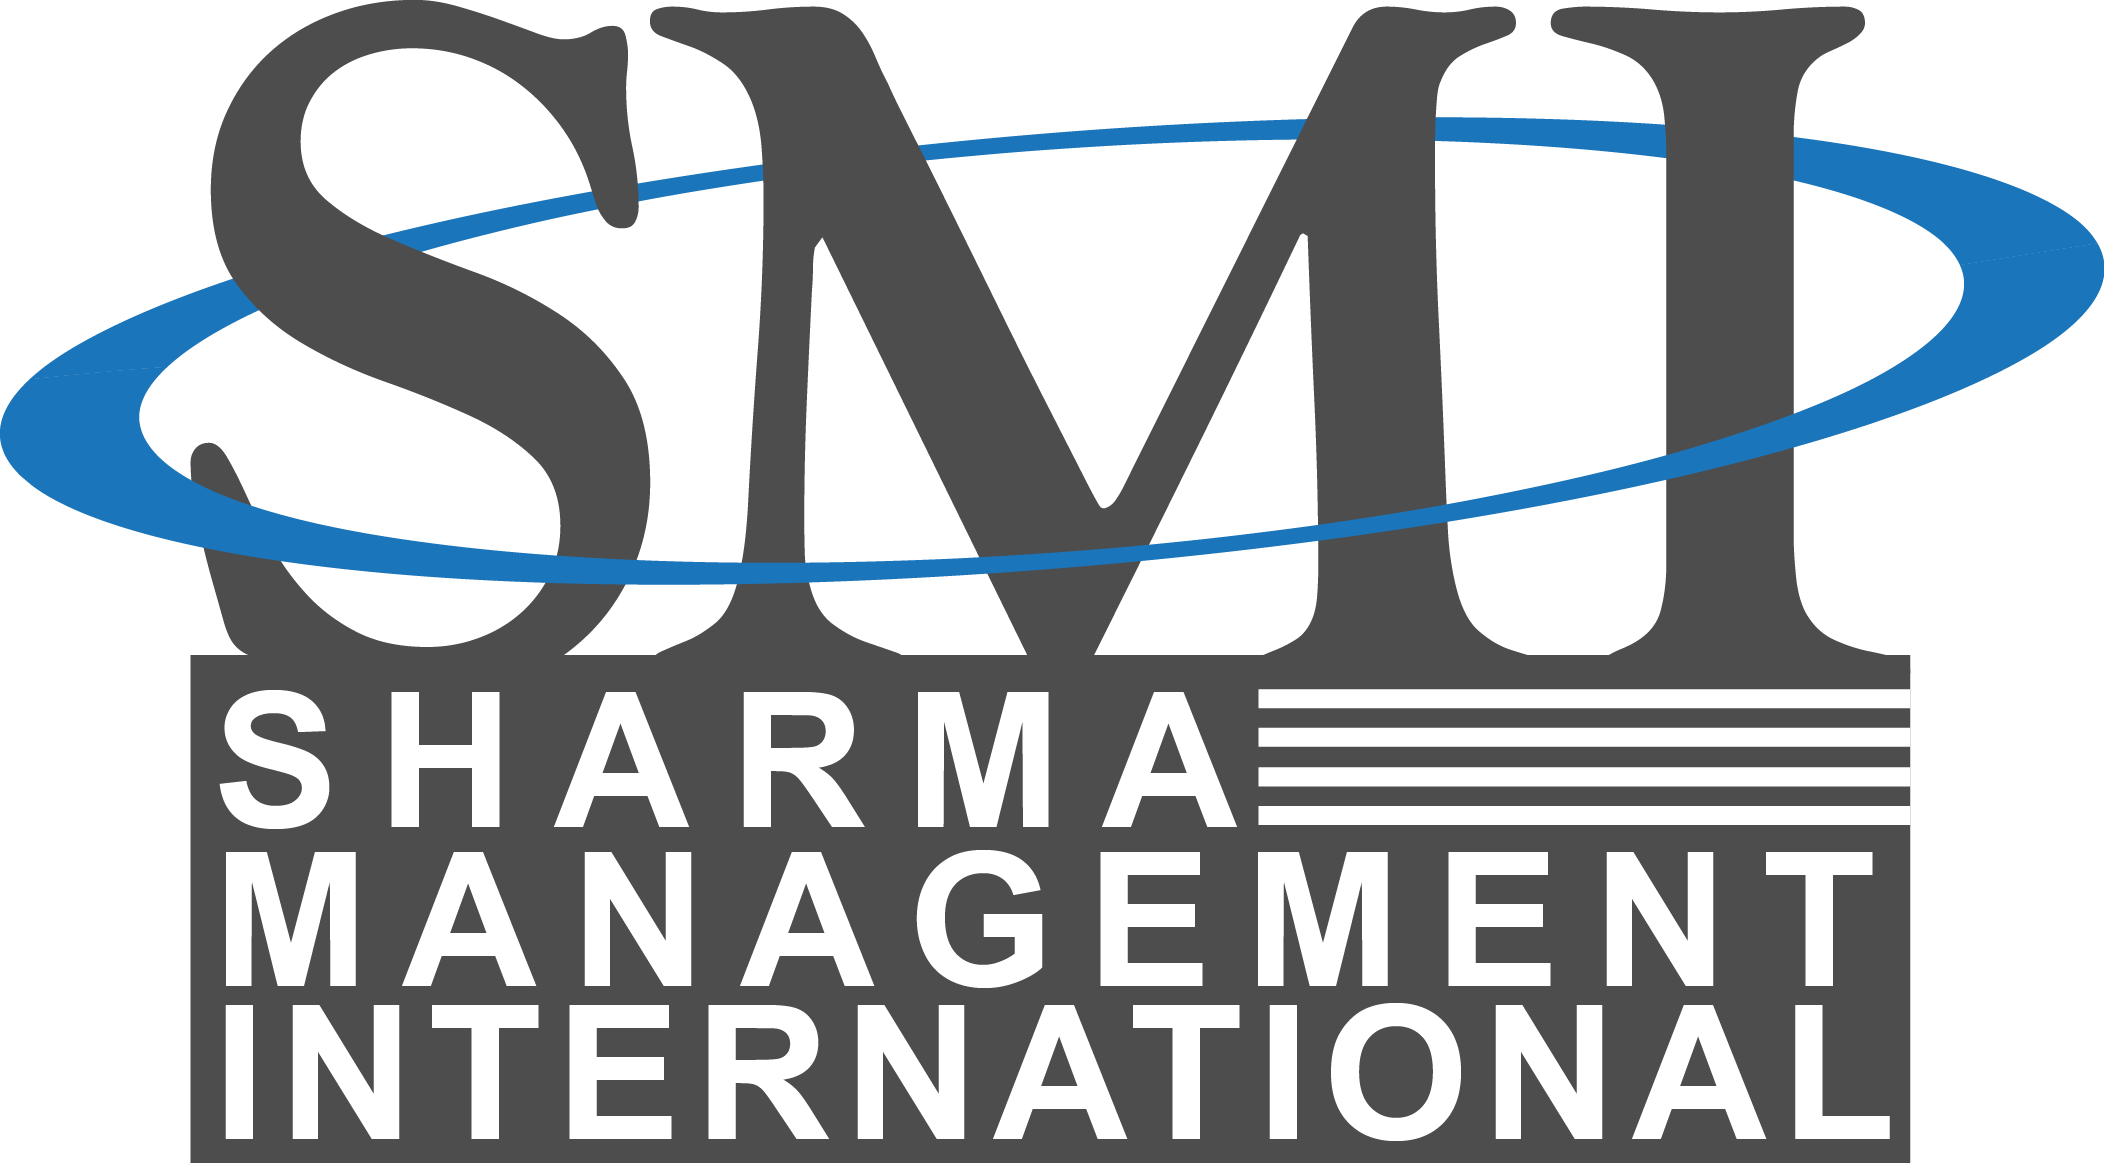 Certified Knowledge Manager - Sharma Management International